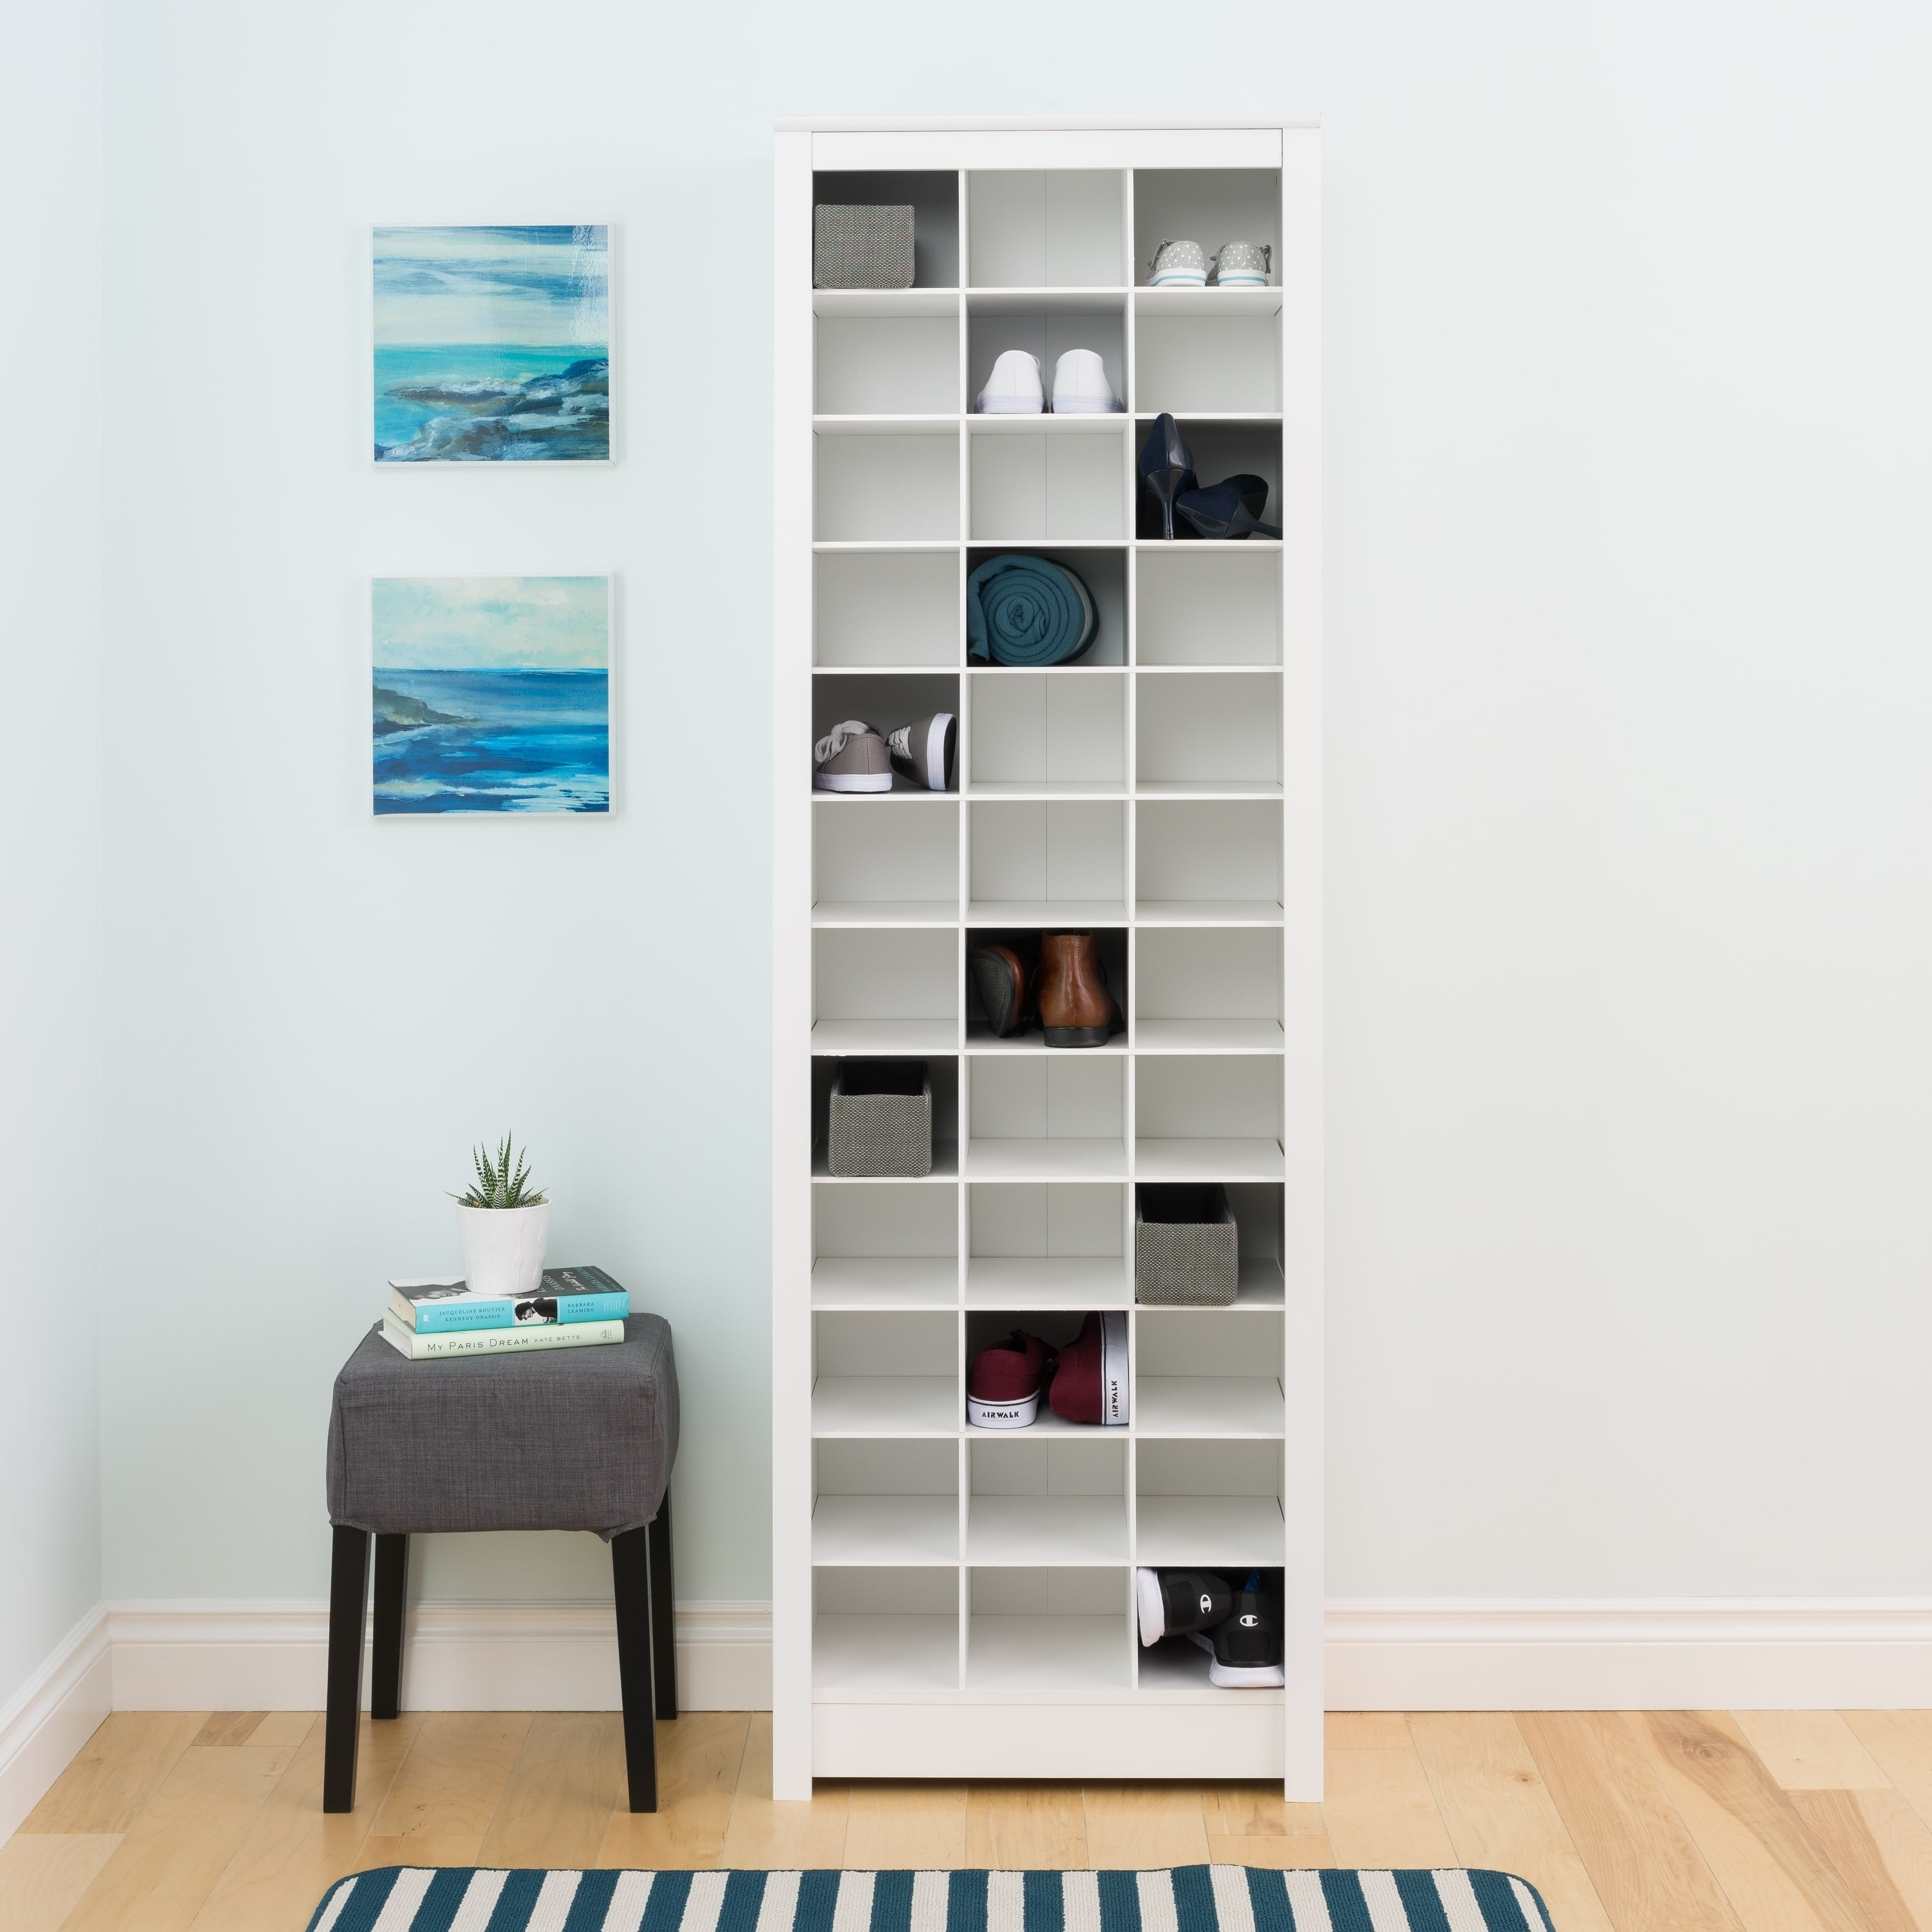 Buy Decorative Storage & Organizers Online at Overstock.com | Our ...